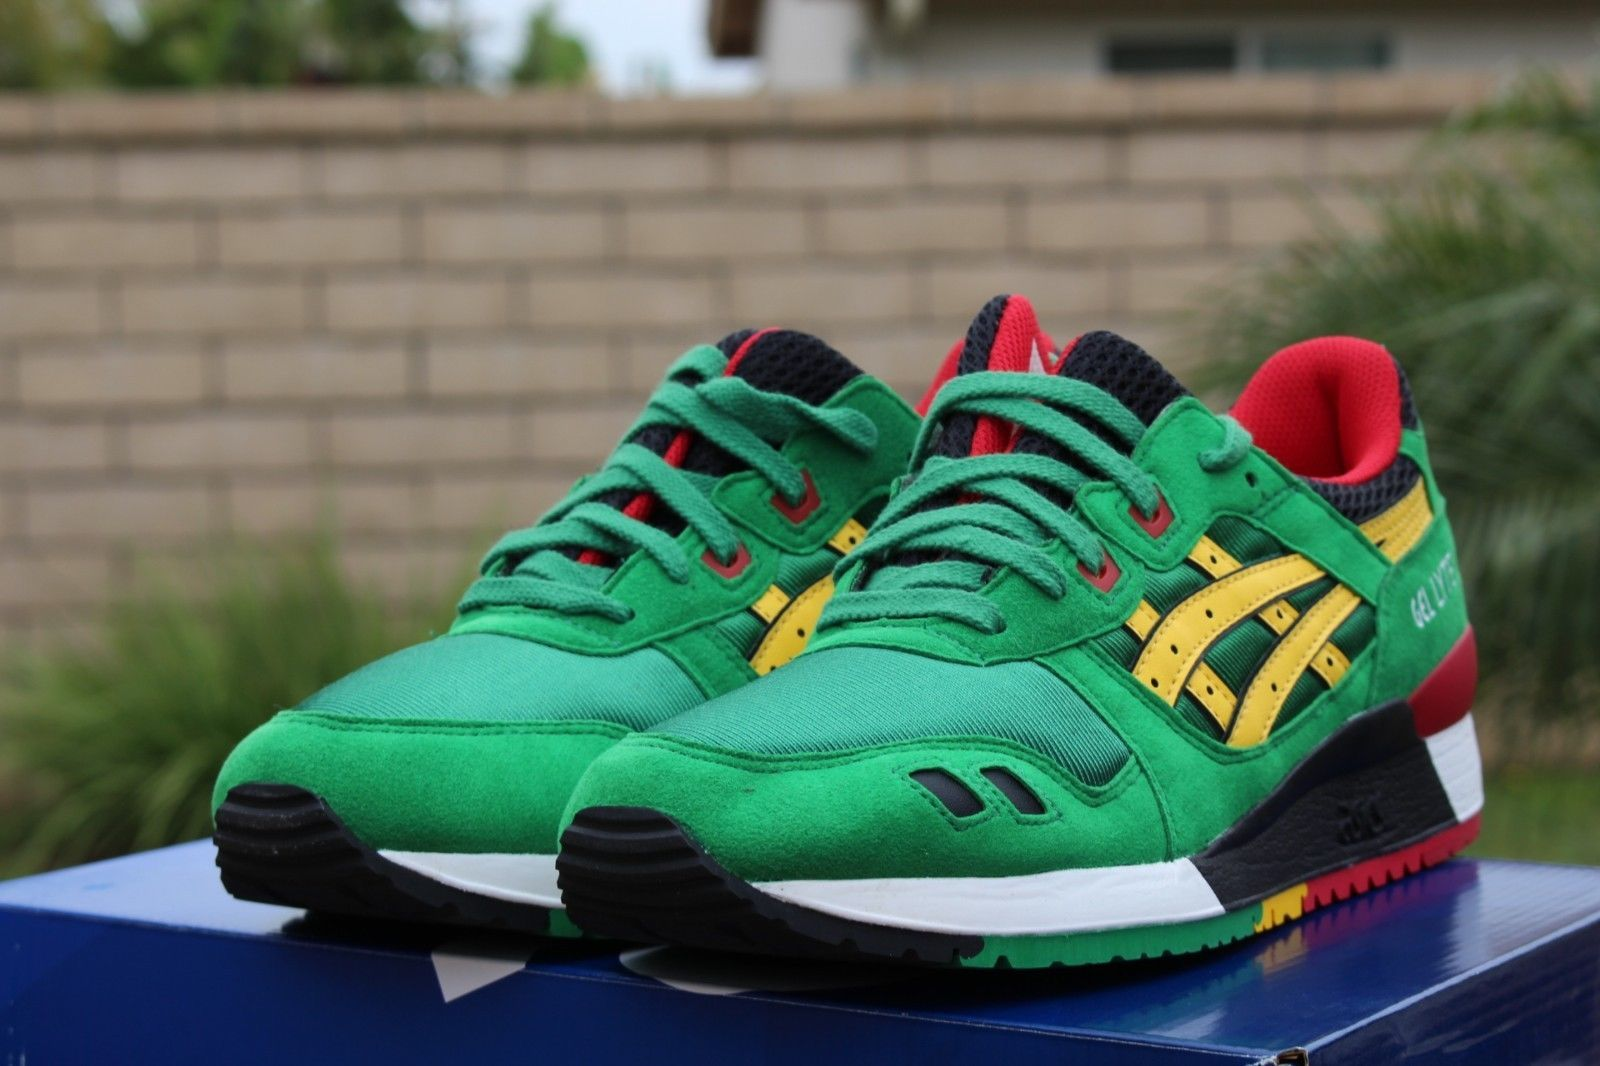 ASICS GEL LYTE III GREEN YELLOW RED CARNIVAL PACK H514N 8404 $210.00